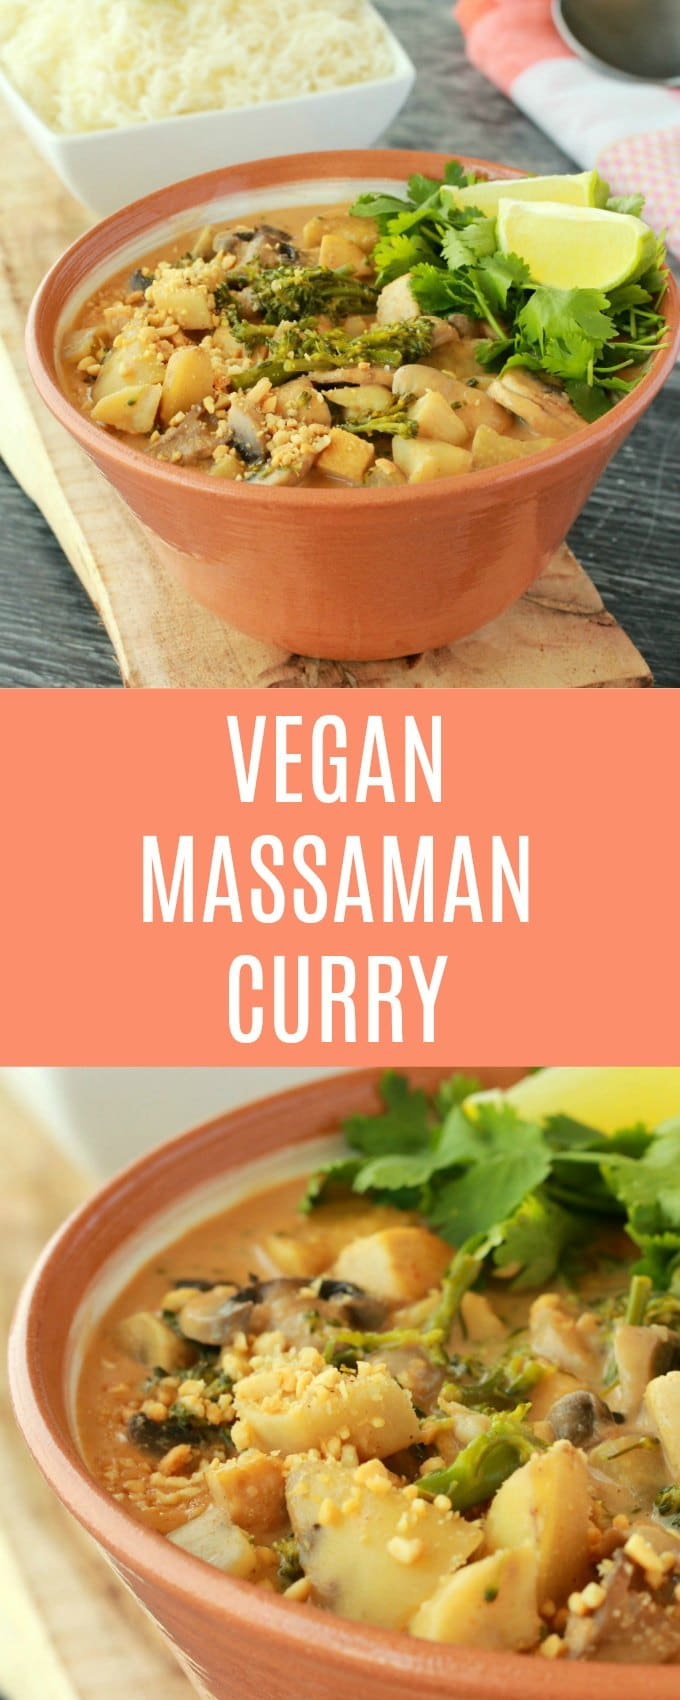 Super rich and decadent vegan massaman curry. A deliciously spicy curry with sweet potatoes, vegetables and tofu in a base of coconut milk and spices. Ultra creamy and completely satisfying. #vegan #lovingitvegan #vegandinner #vegancurry #glutenfree #dairyfree | lovingitvegan.com